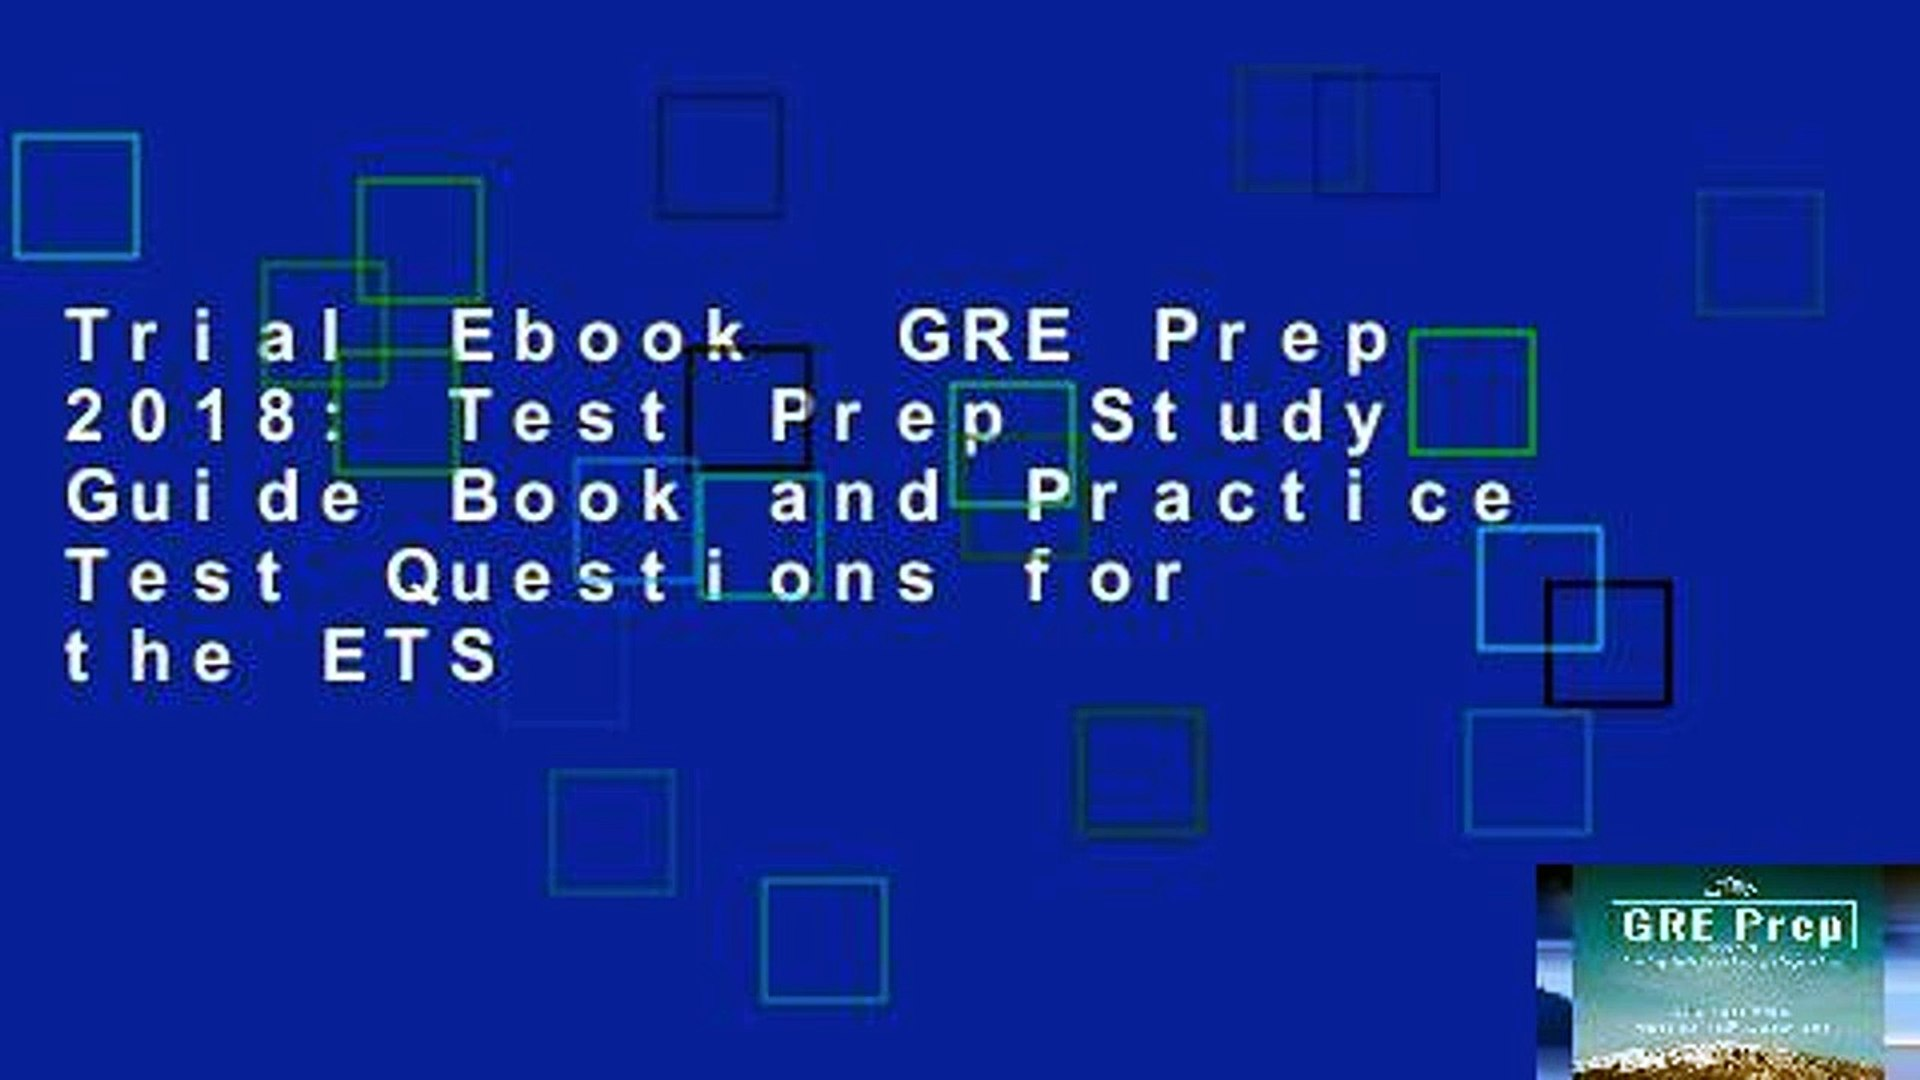 Gre Study Book >> Trial Ebook Gre Prep 2018 Test Prep Study Guide Book And Practice Test Questions For The Ets